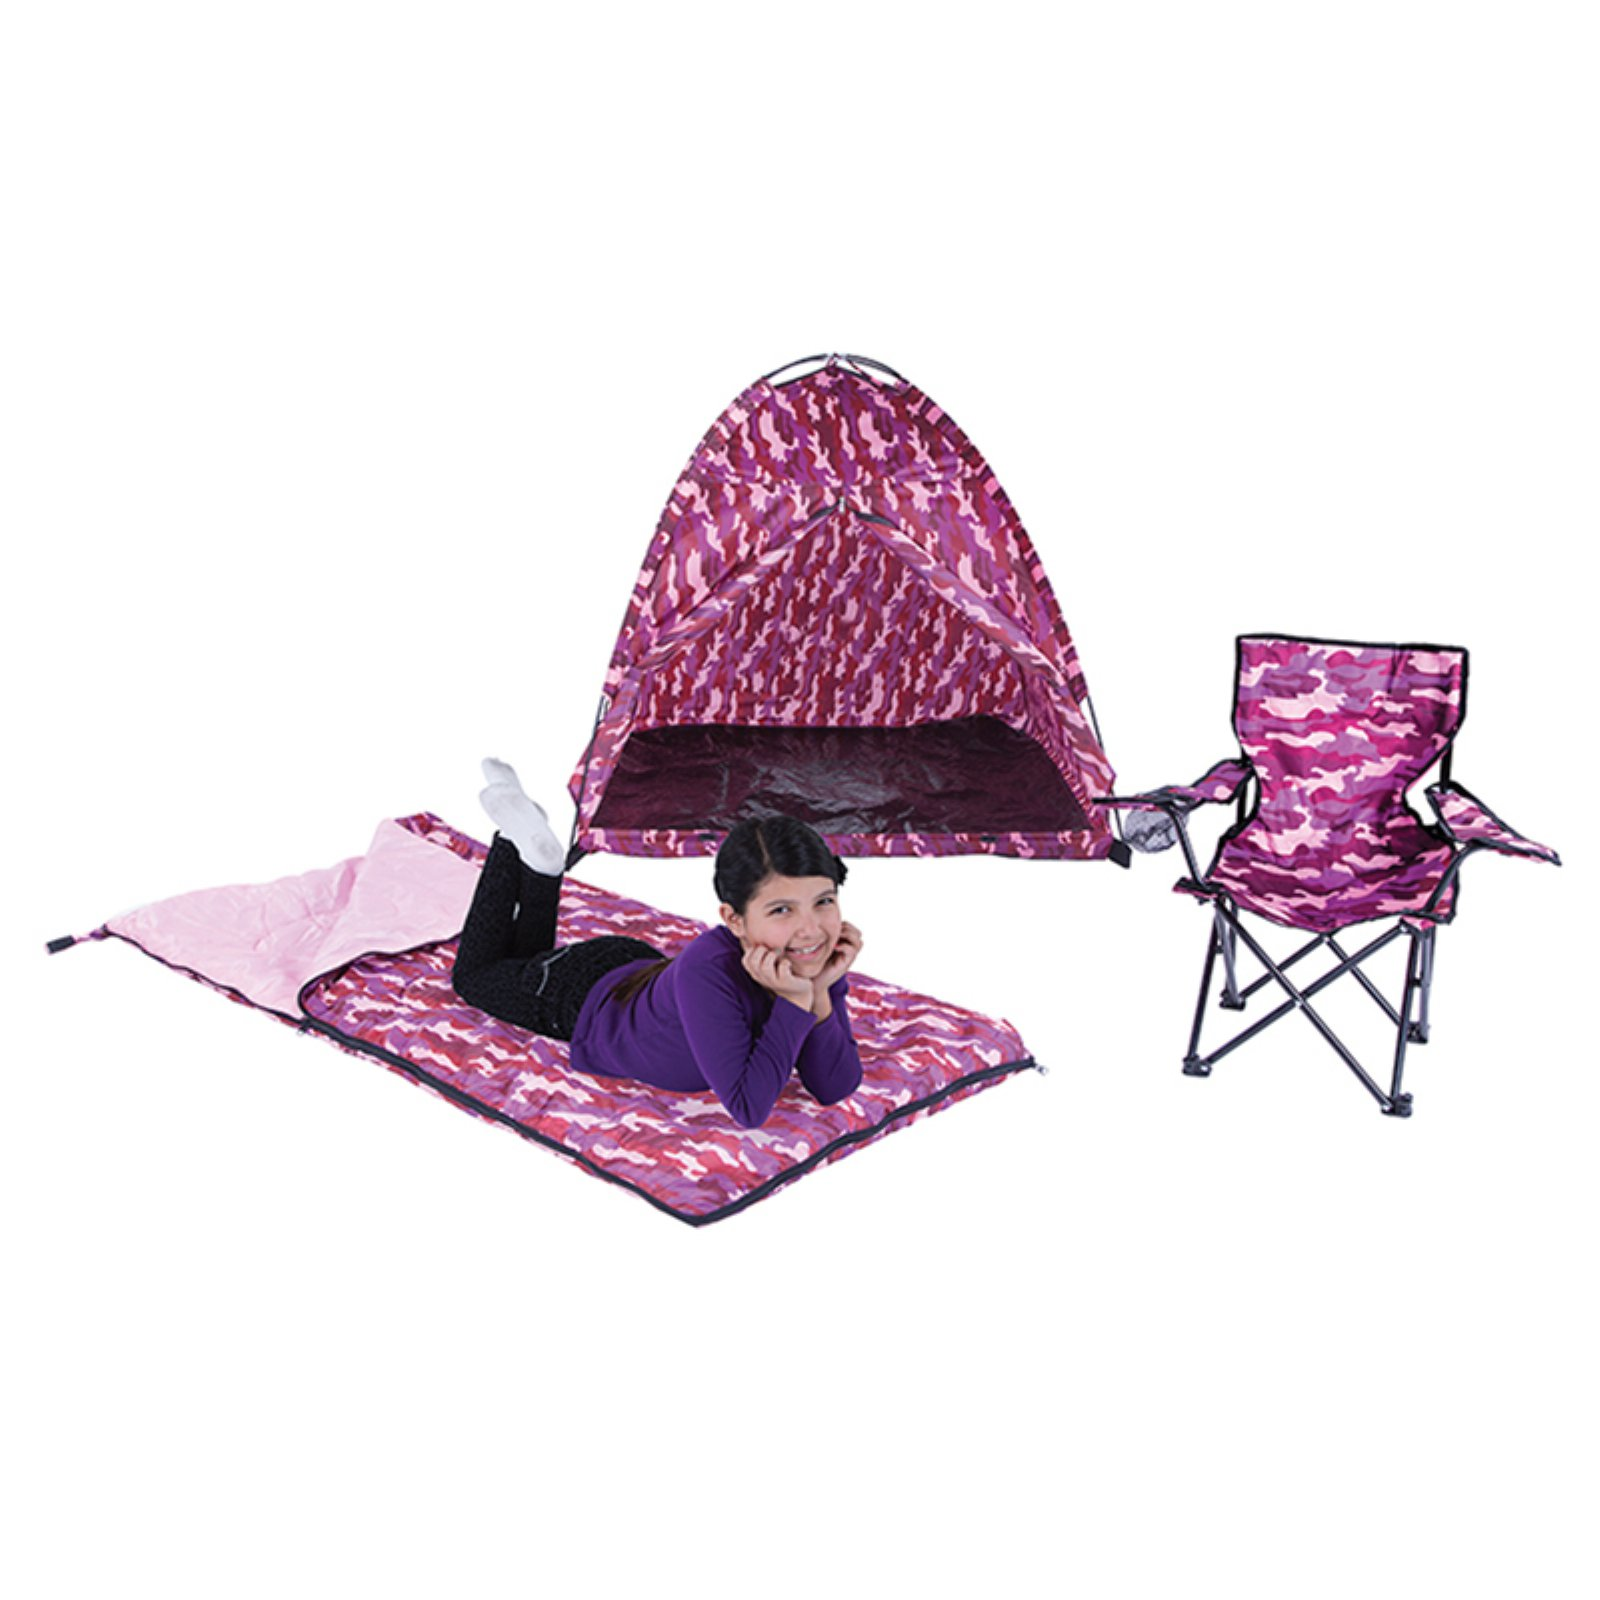 Pacific Play Tents Pink Camo Set, Tent, Chair and Sleeping Bag